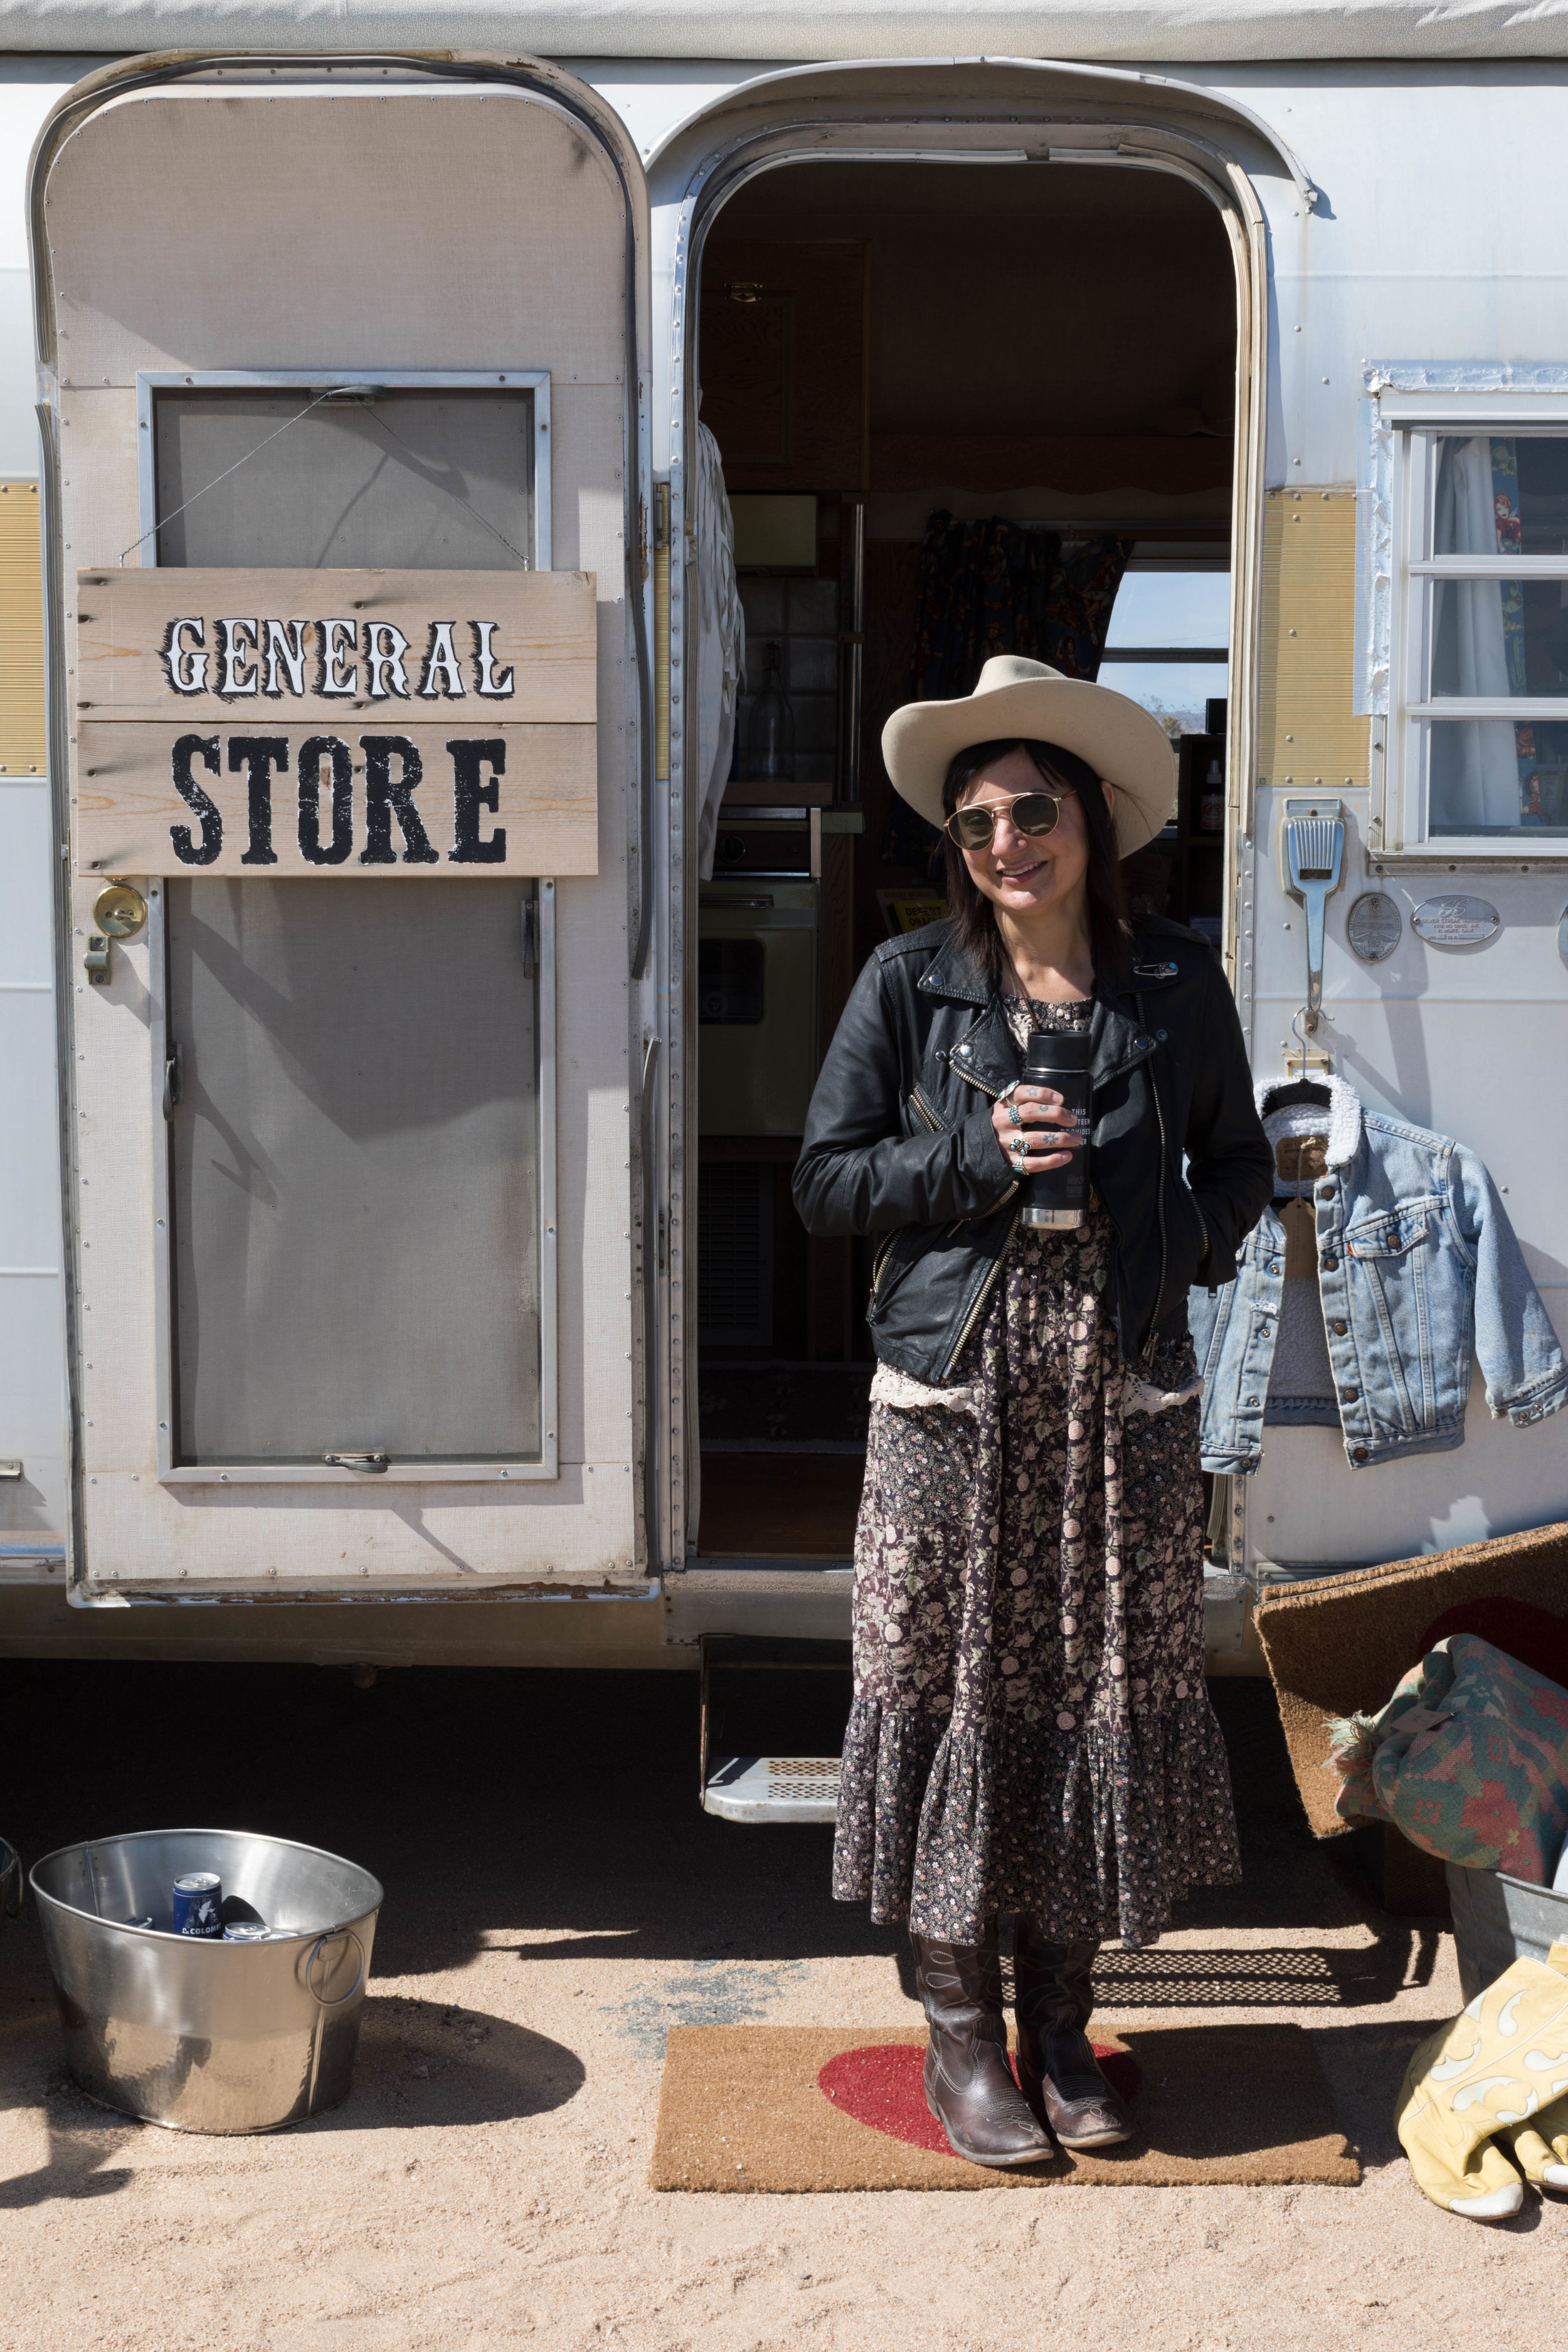 Cutest General Store full of hand picked desert provisions.